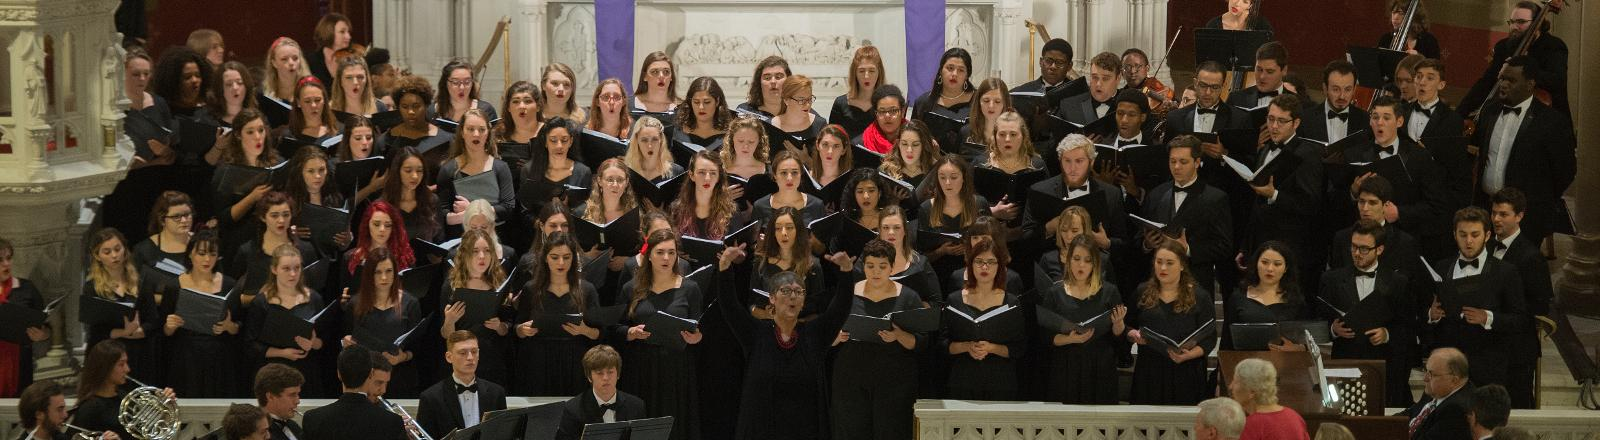 Dr. Meg Frazier conducts the Loyola Chorale in Holy Name of Jesus Church.